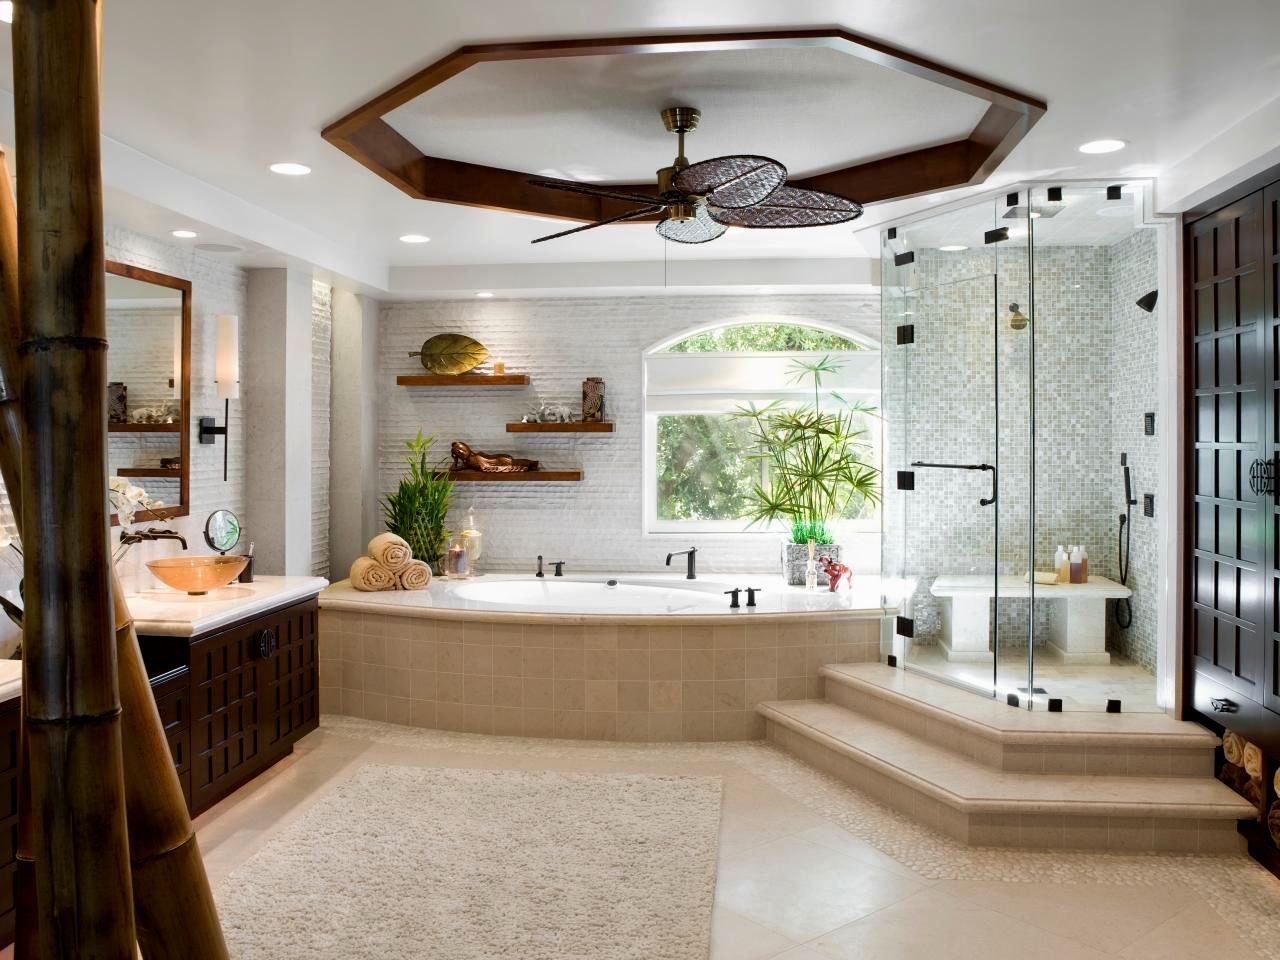 awesome waterproof wall panels for bathrooms model-Beautiful Waterproof Wall Panels for Bathrooms Decoration